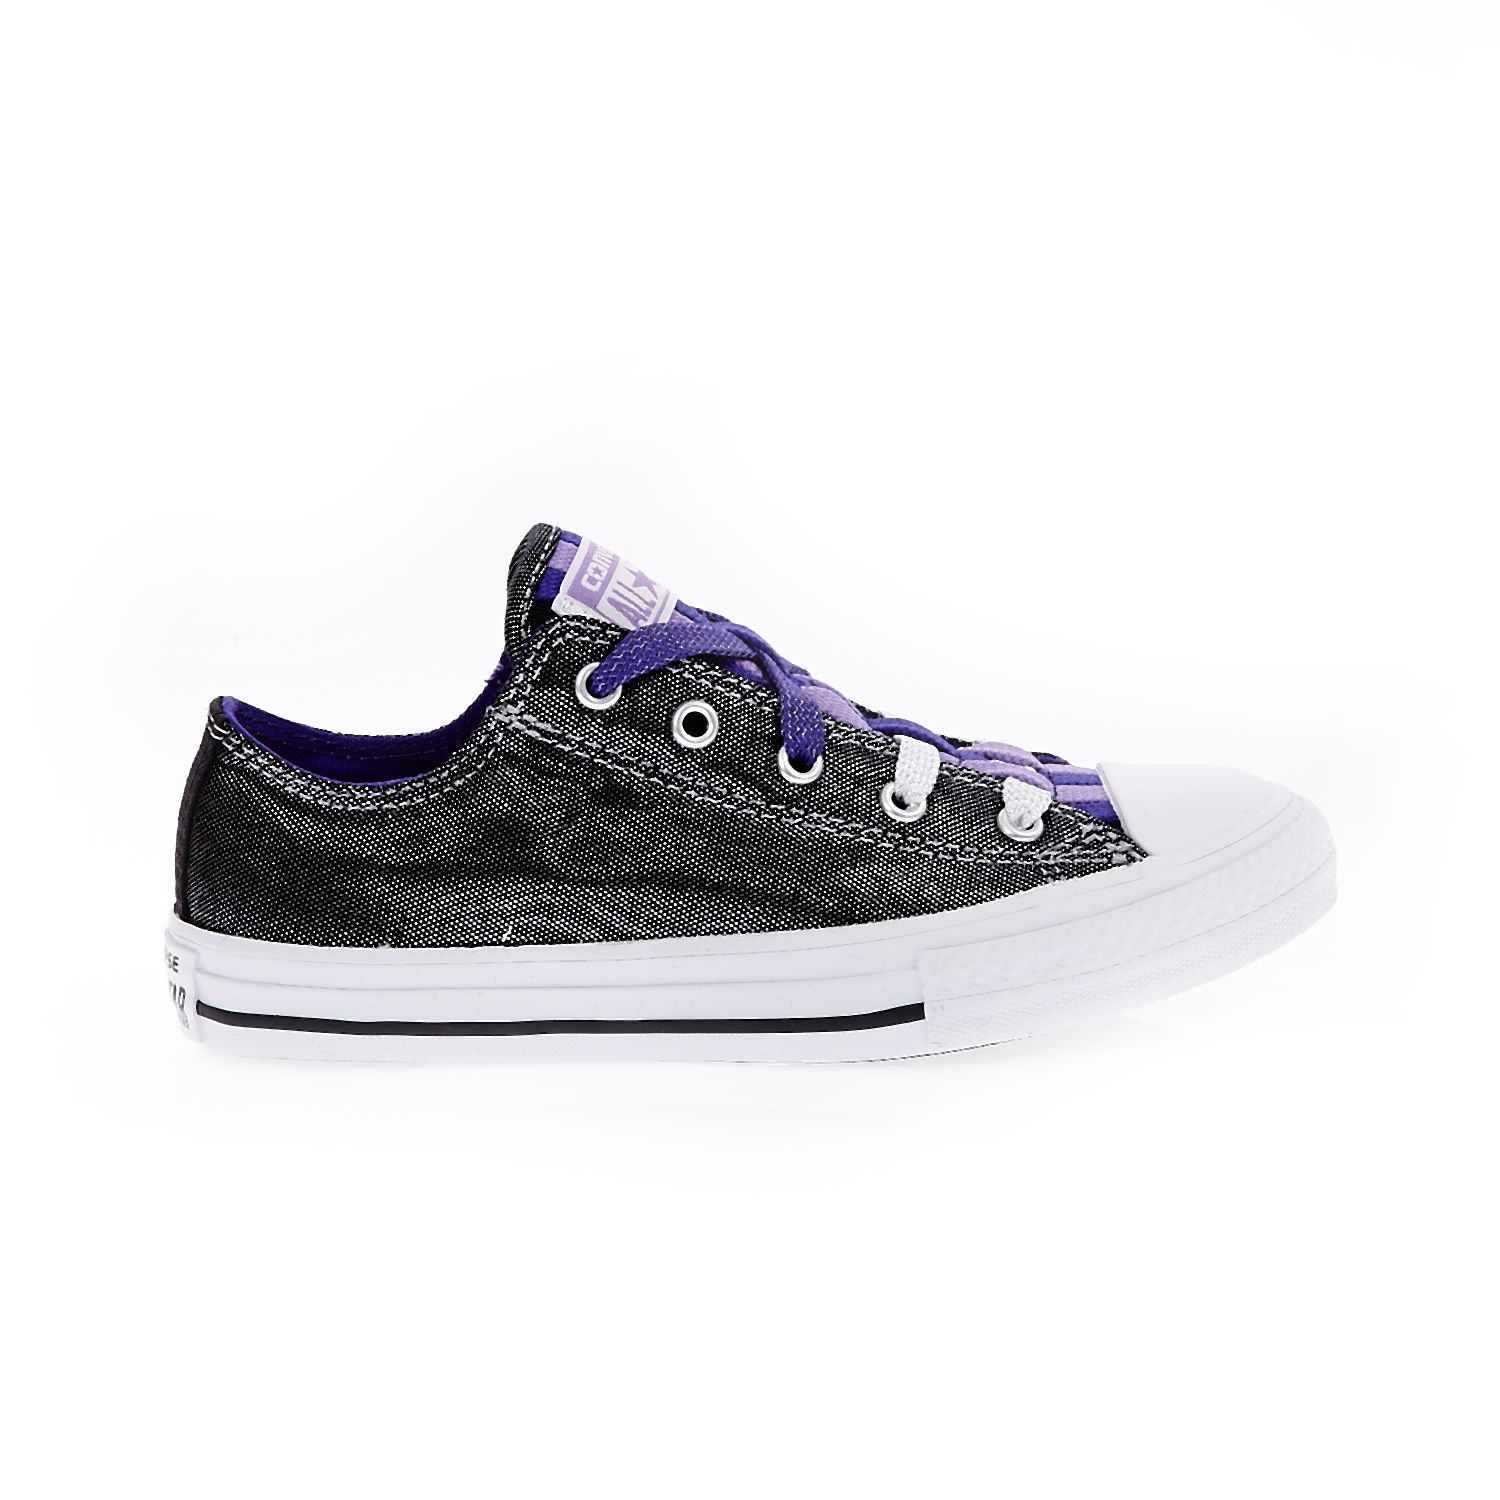 CONVERSE - Παιδικά παπούτσια Chuck Taylor All Star Loop ανθρακί